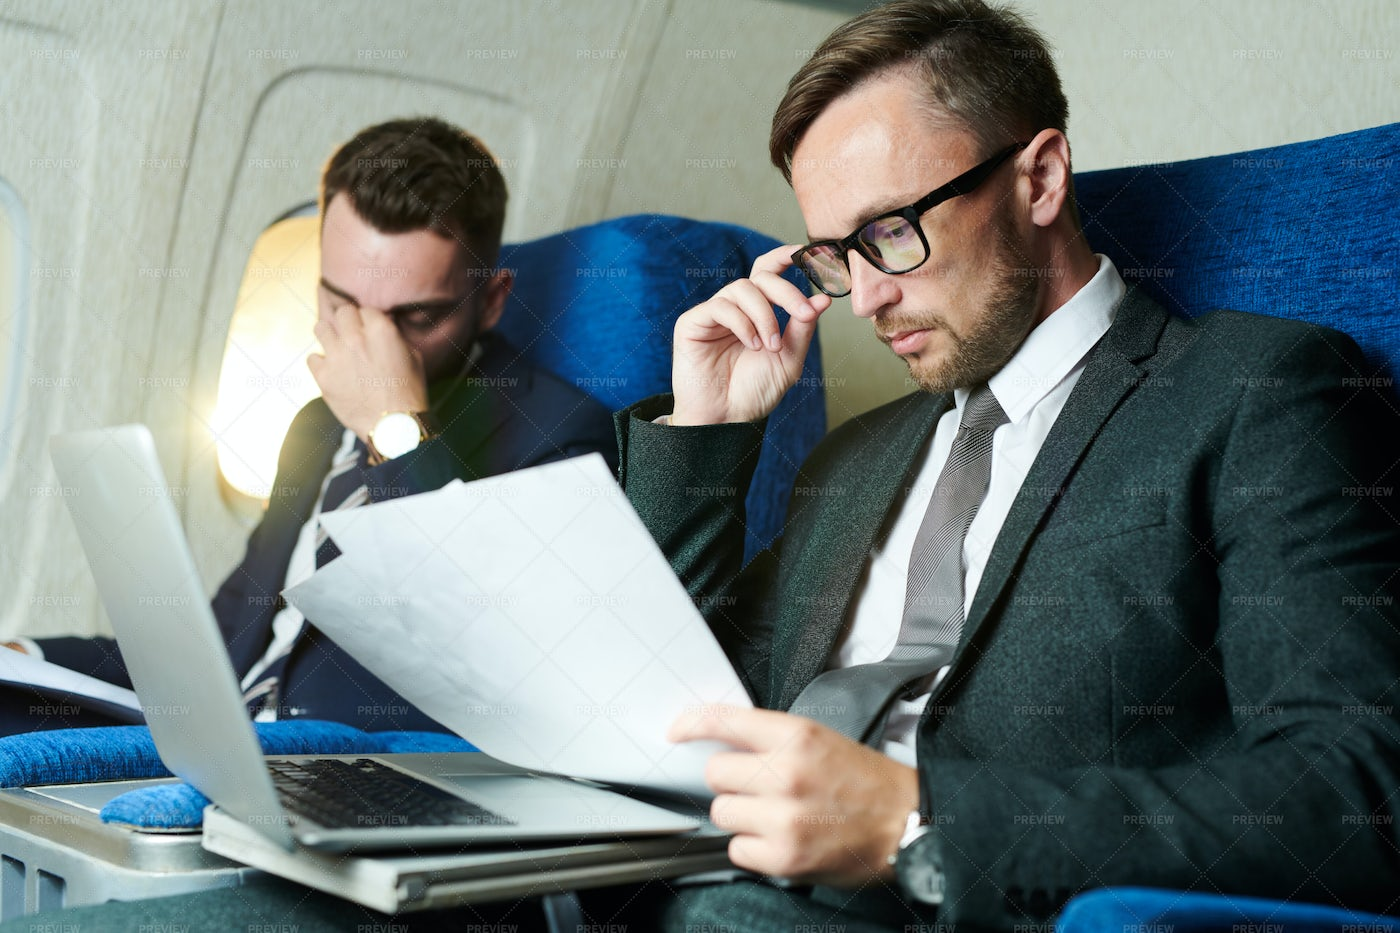 Business People Working In Airplane: Stock Photos